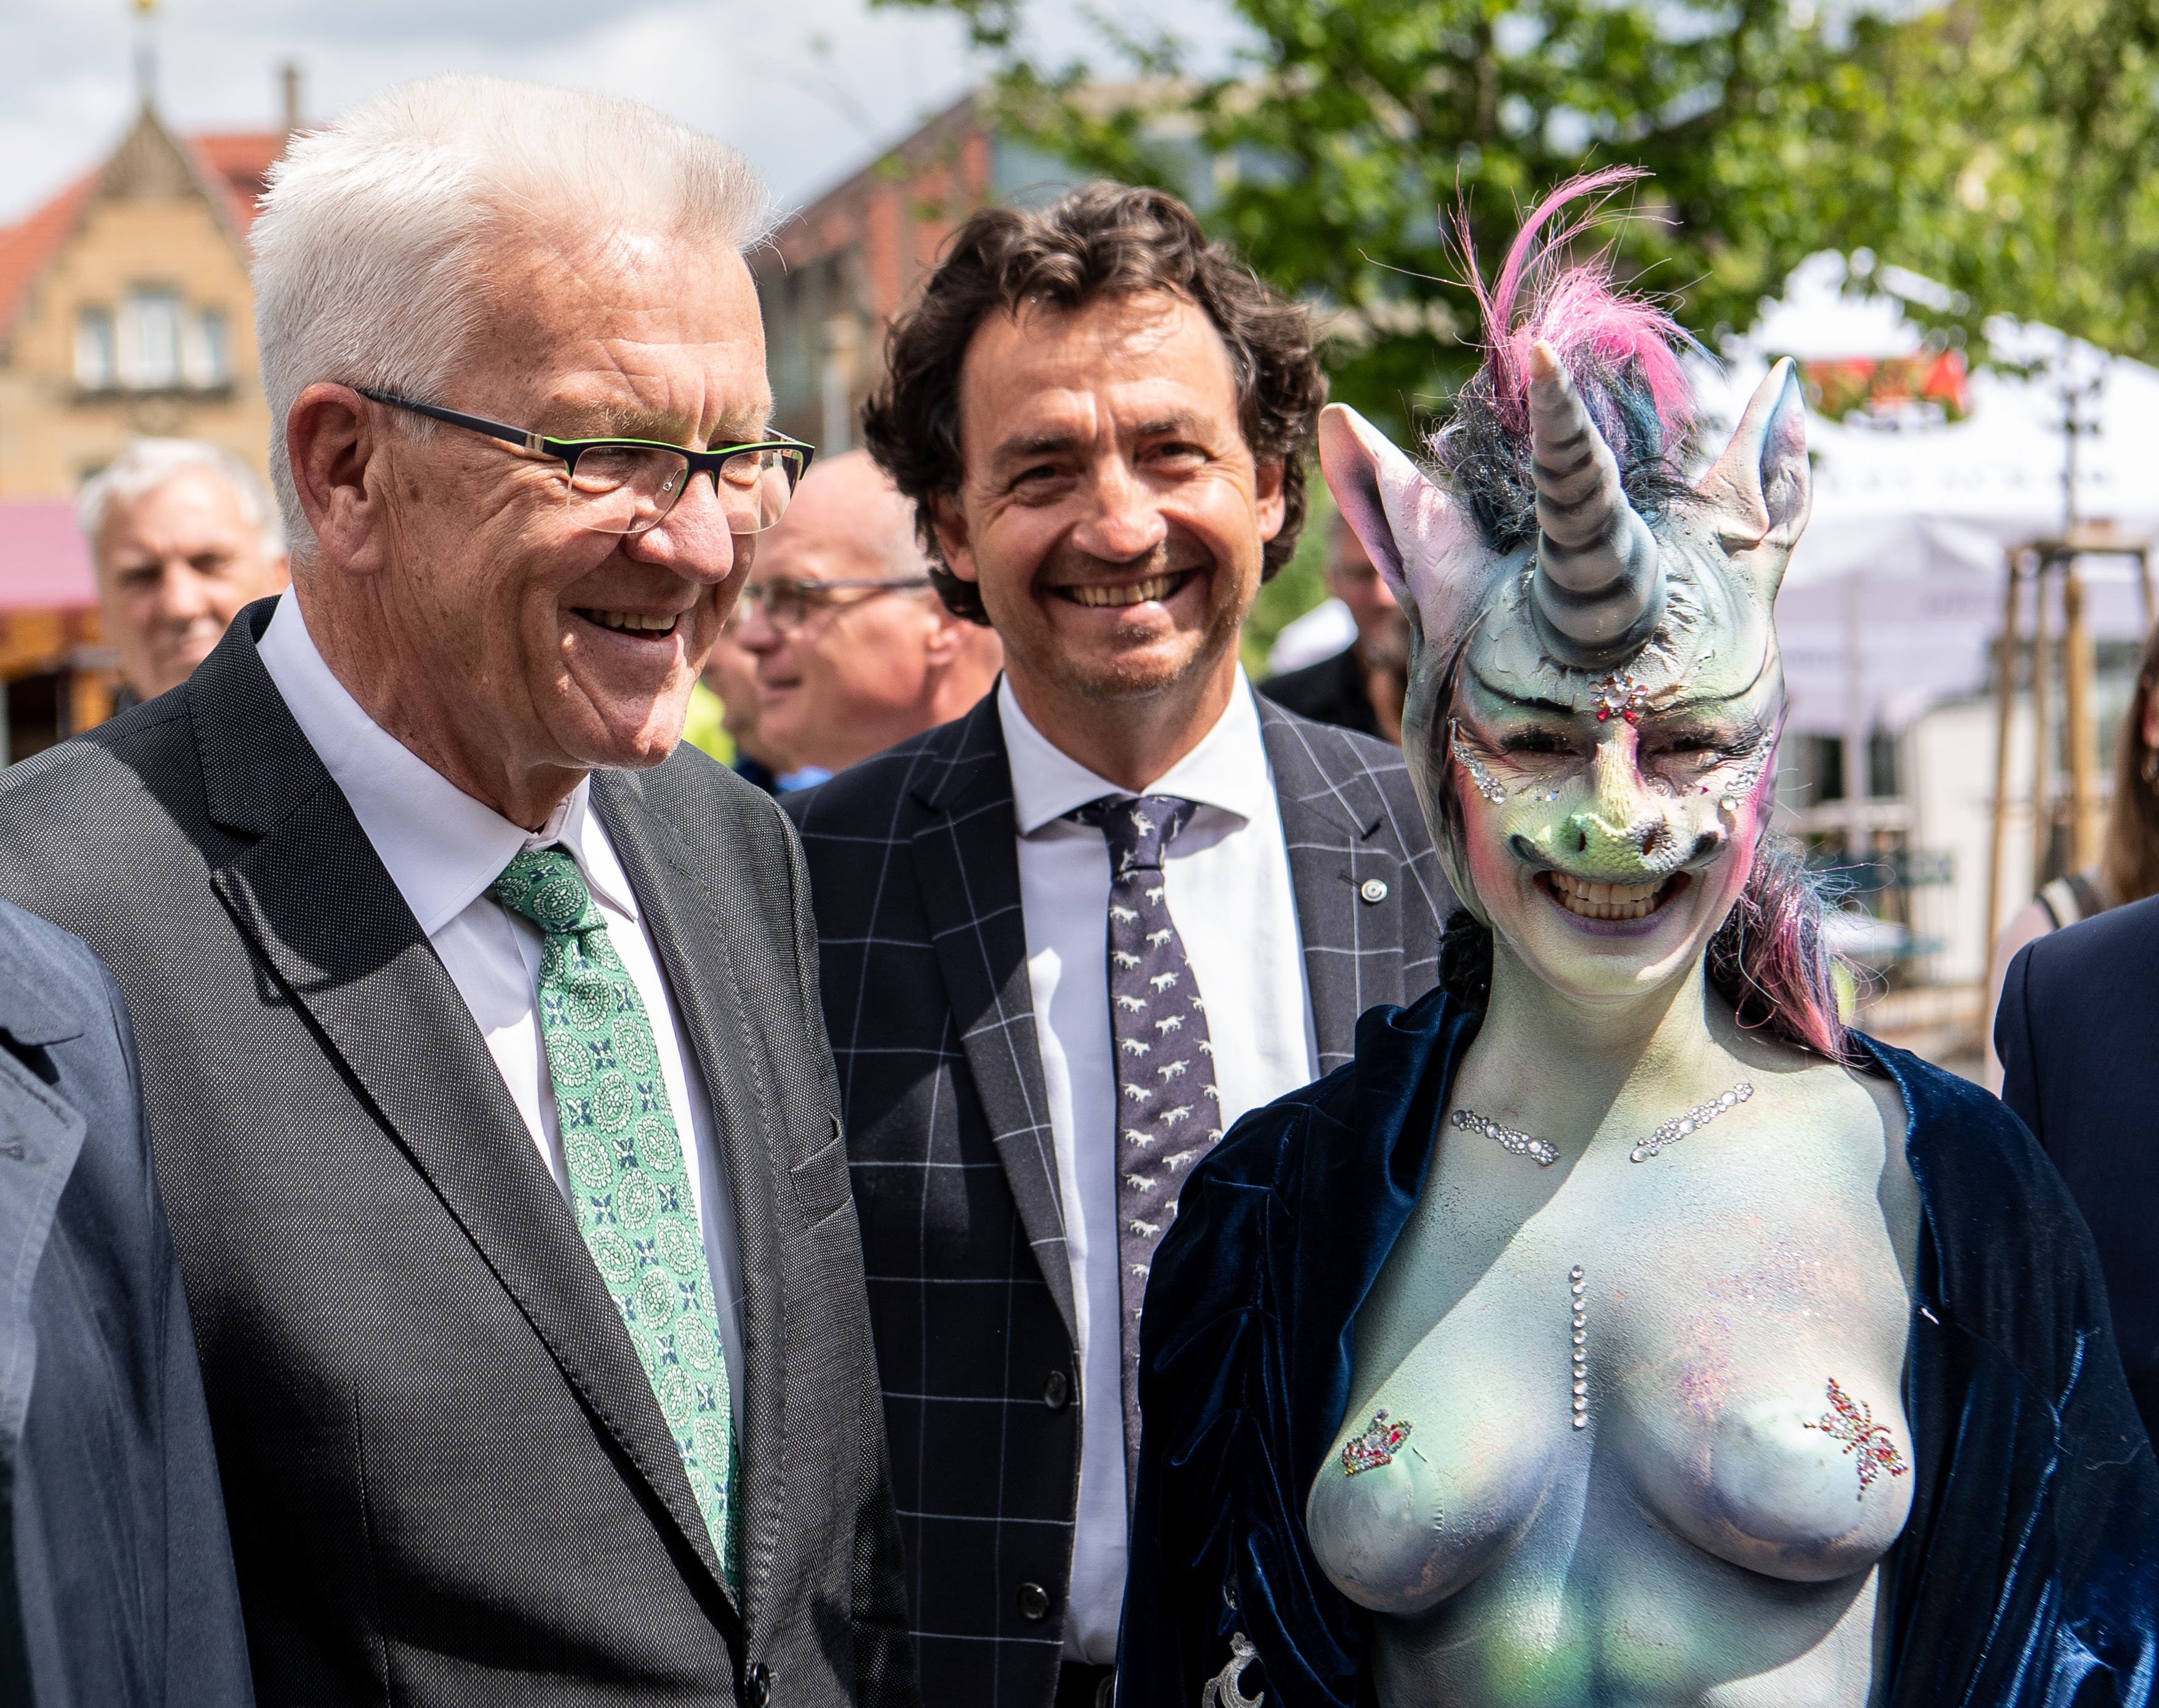 Winfried Kretschmann and Counselor Cynthia Schneider: The Baden-Württemberg Prime Minister can not understand the excitement of the unicorn costume. (Source: dpa)